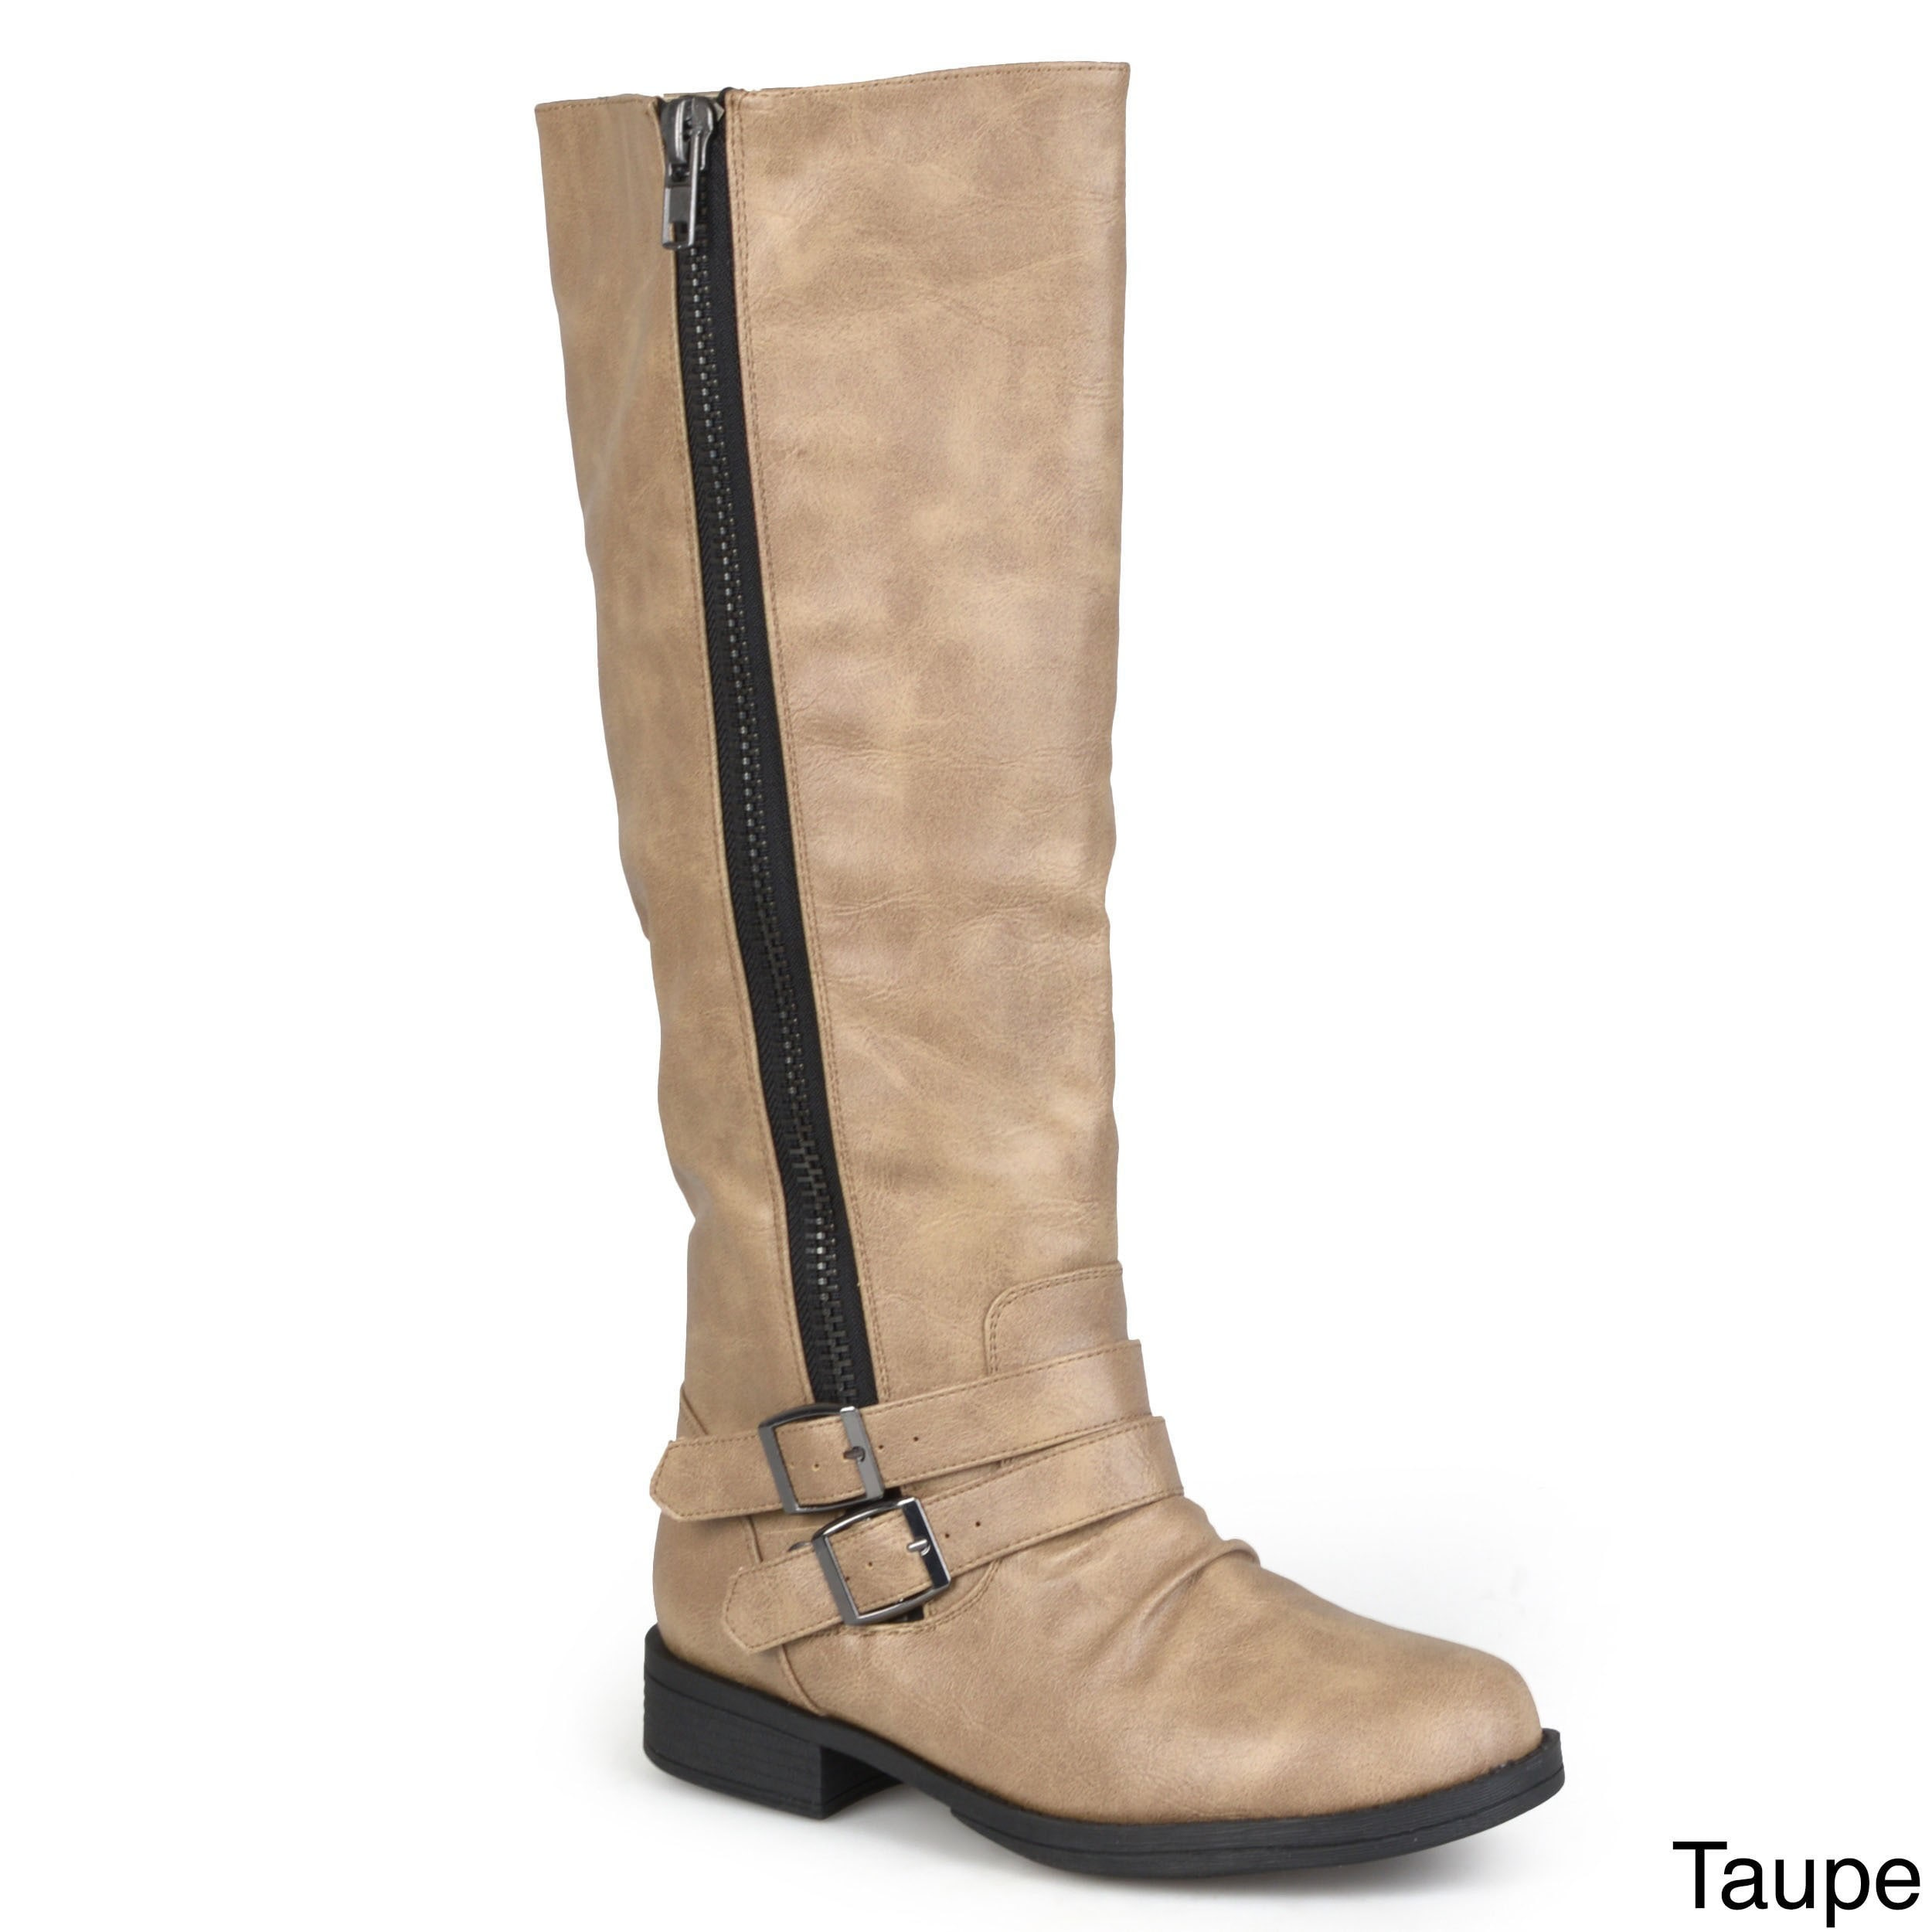 f0dccb3a01270 Shop Journee Collection Women's 'Lady' Regular and Wide-calf Riding Boot - Free  Shipping Today - Overstock - 8342882